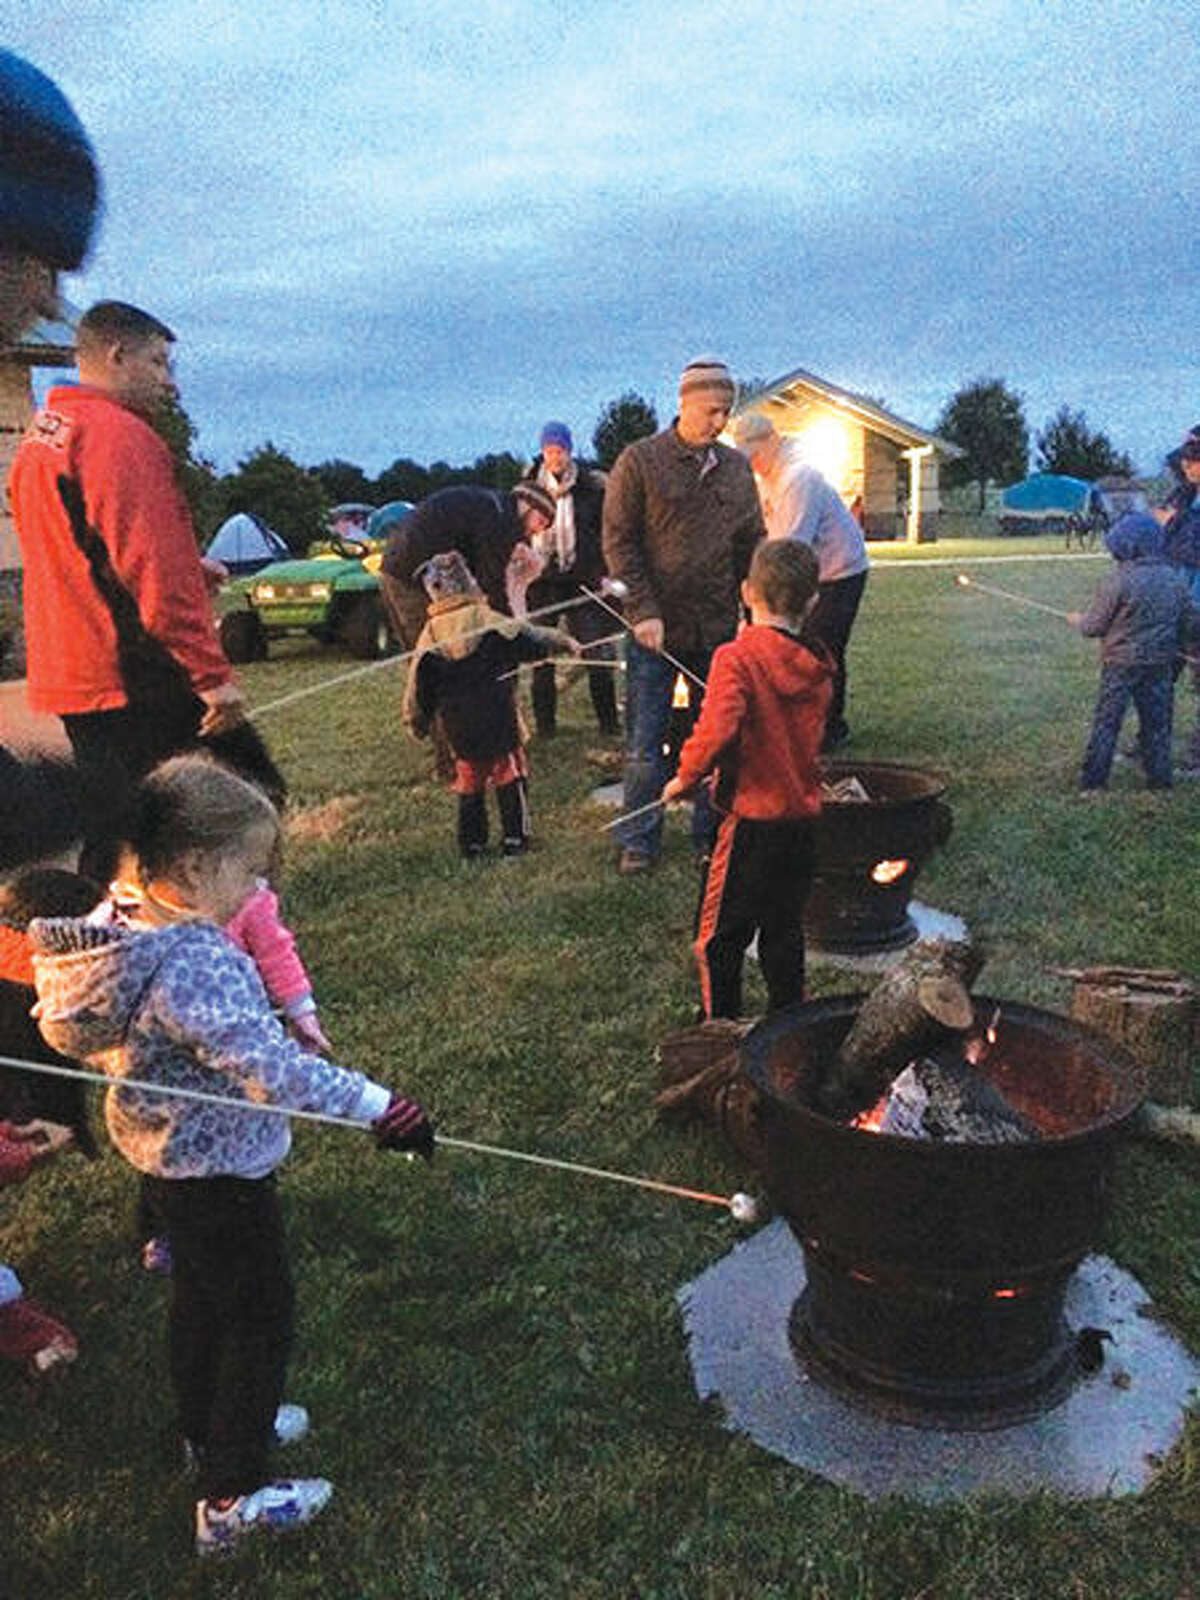 Participants in a previous Family Camp Out at Glik Park toast marshmallows over a fire pit as they make s'mores.